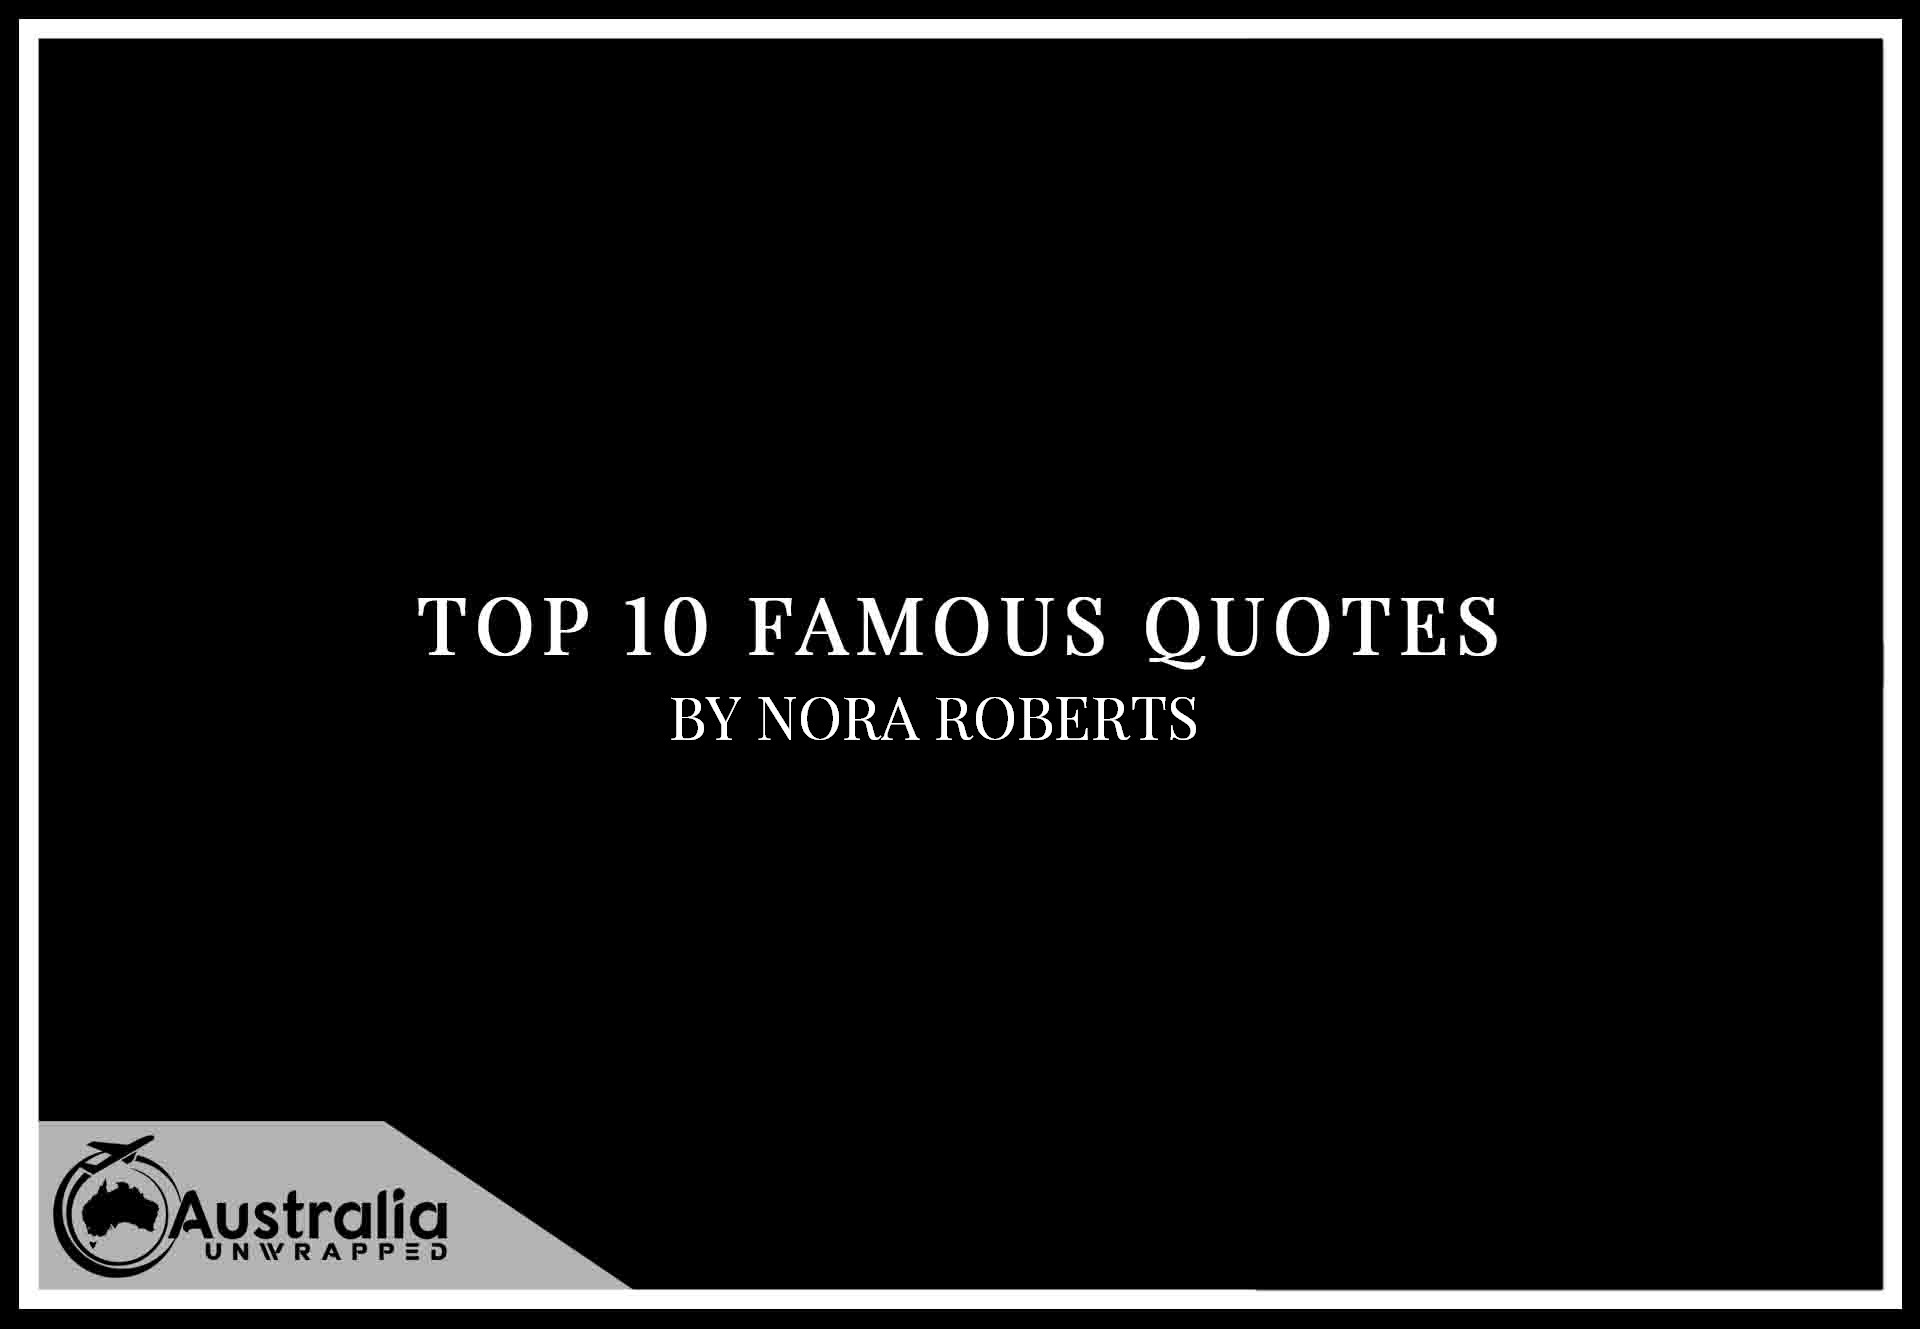 Top 10 Famous Quotes by Author Nora Roberts